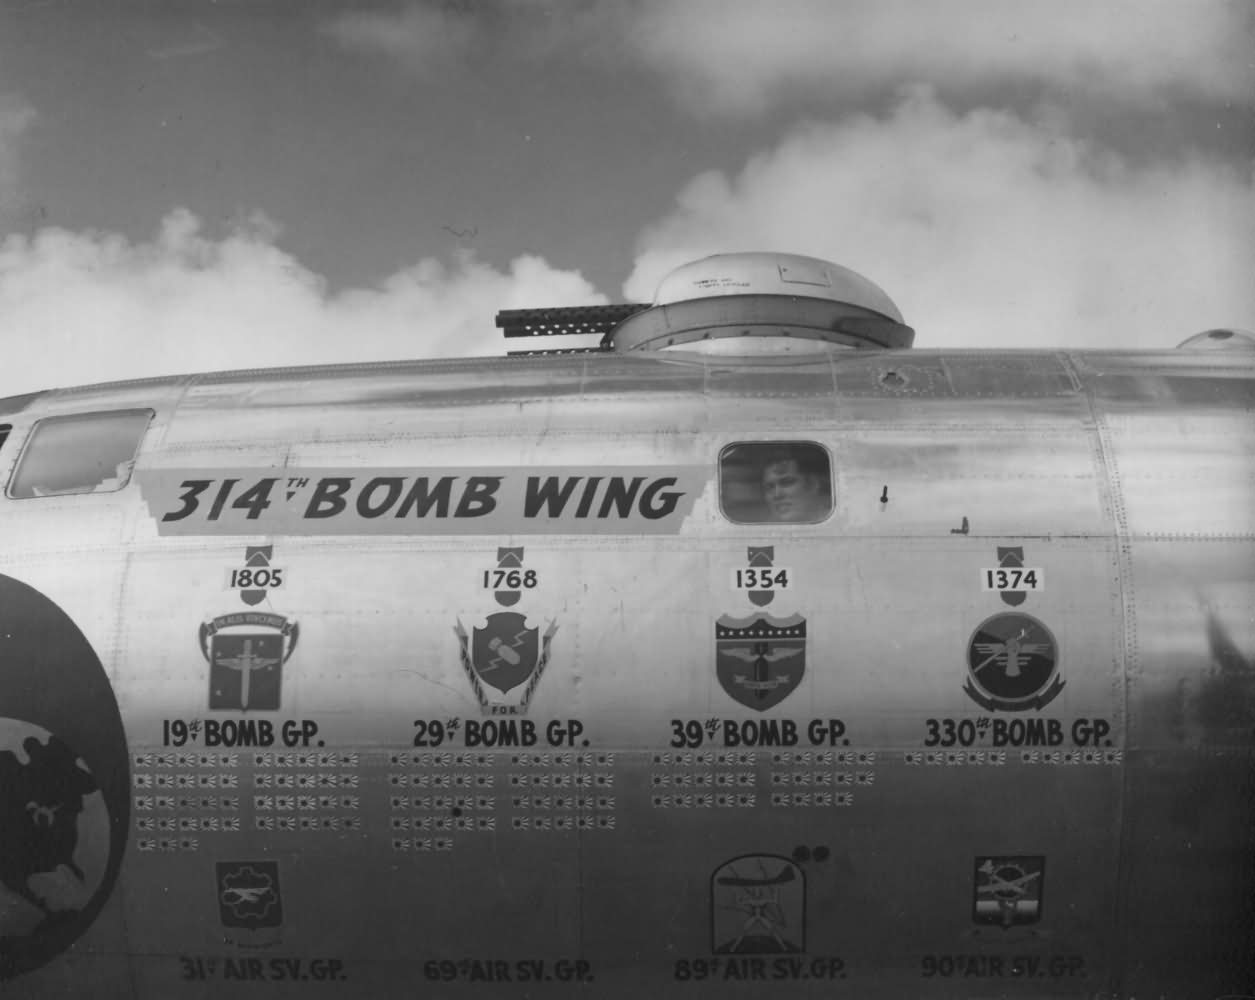 B-29 Superfortress of 314th Bomb Wing at Guam 1945